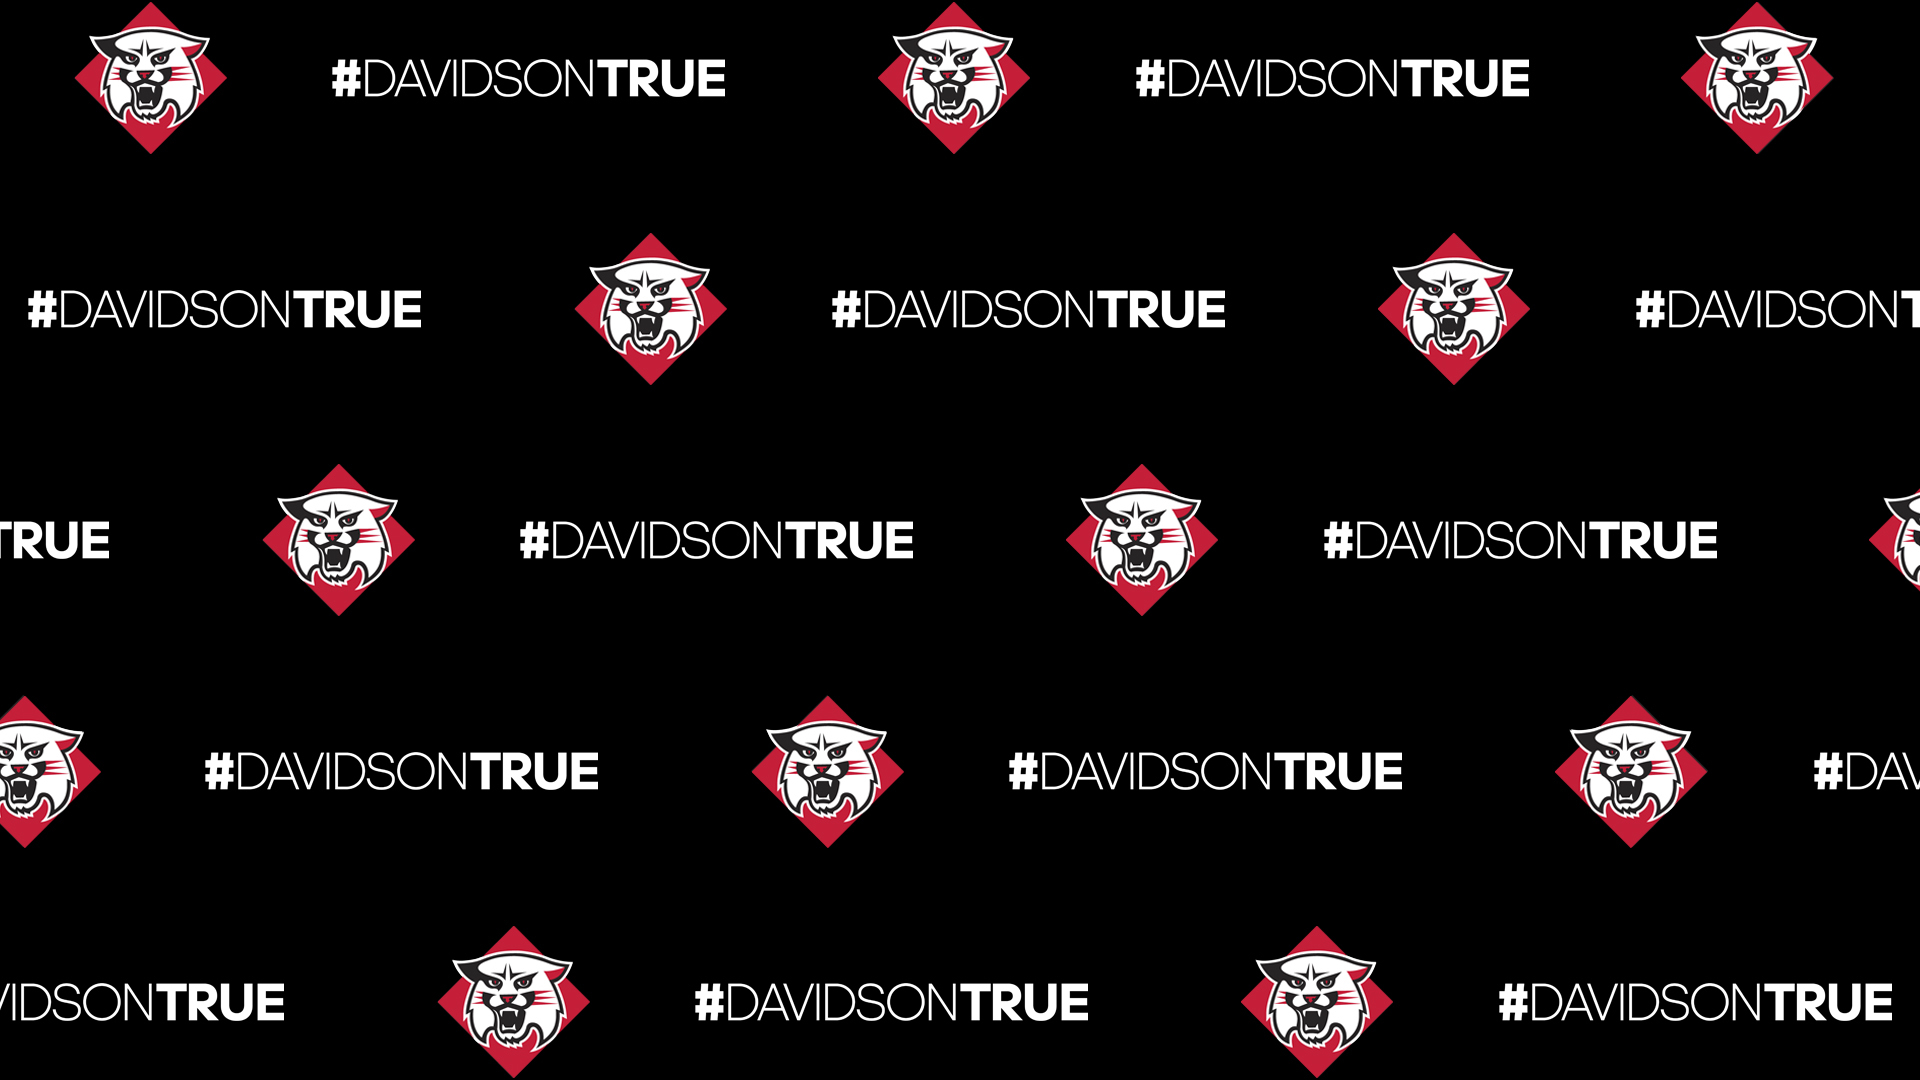 Black Background with Wildcat and #DAVIDSONTRUE